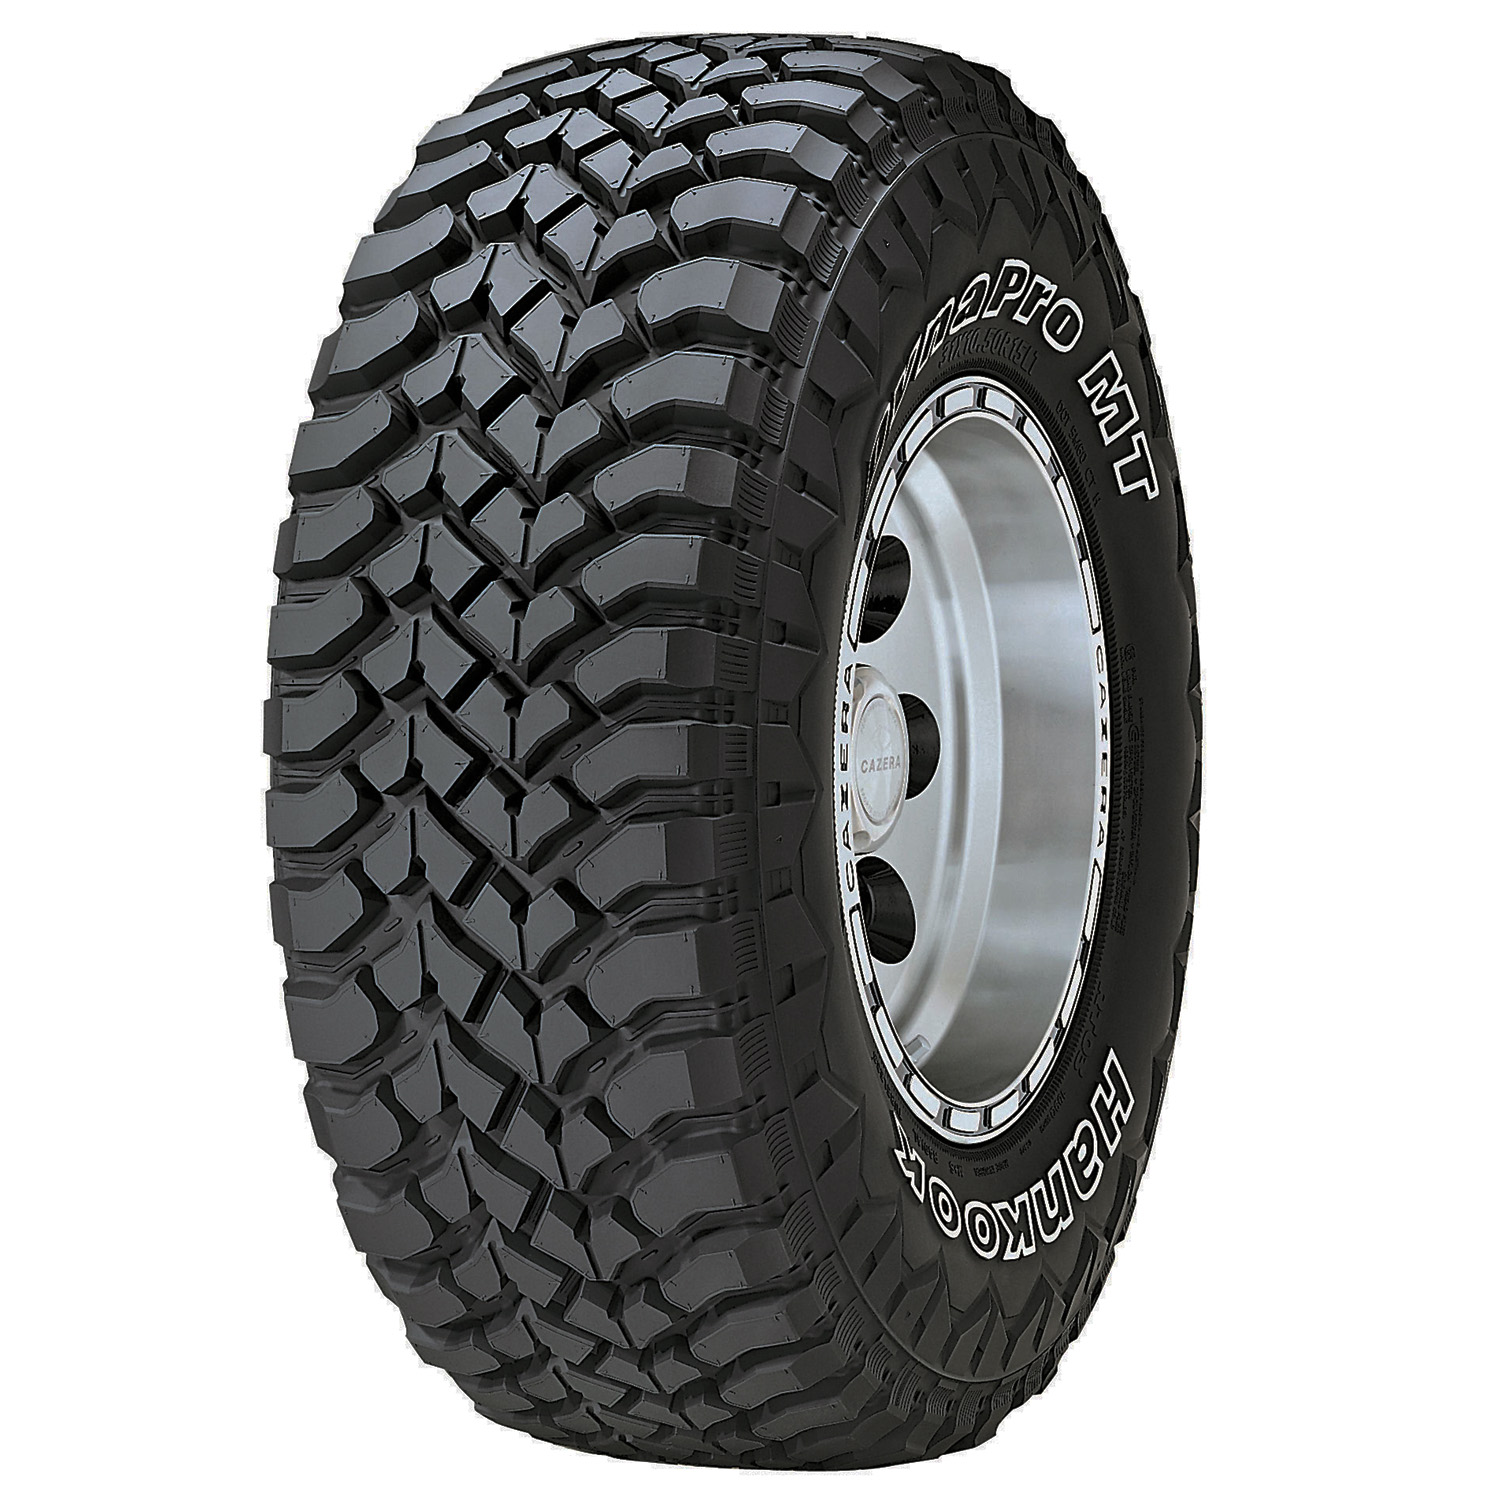 Anvelopa Vara Hankook Dynapro Mt Rt03 33/12.5 R15